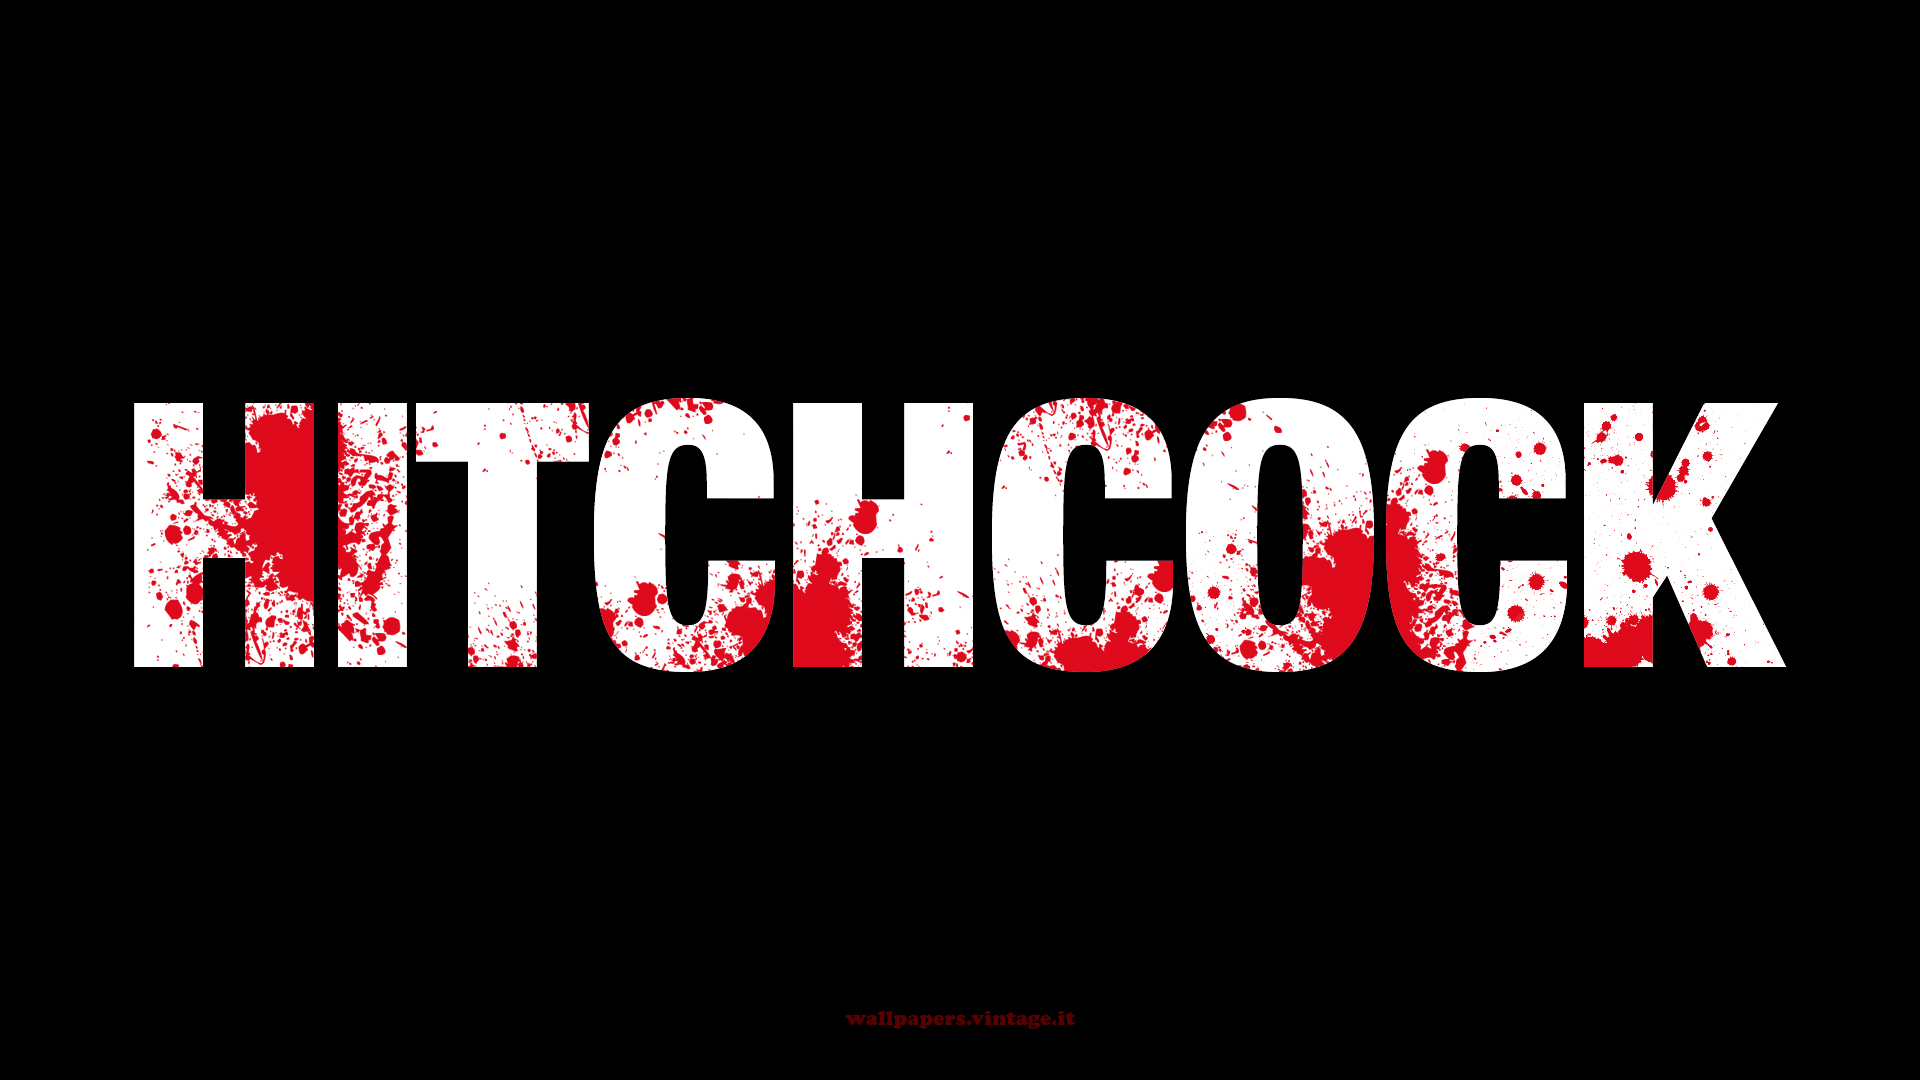 Psycho Wallpapers Top Psycho HQ Photos Psycho WD36 1920x1080